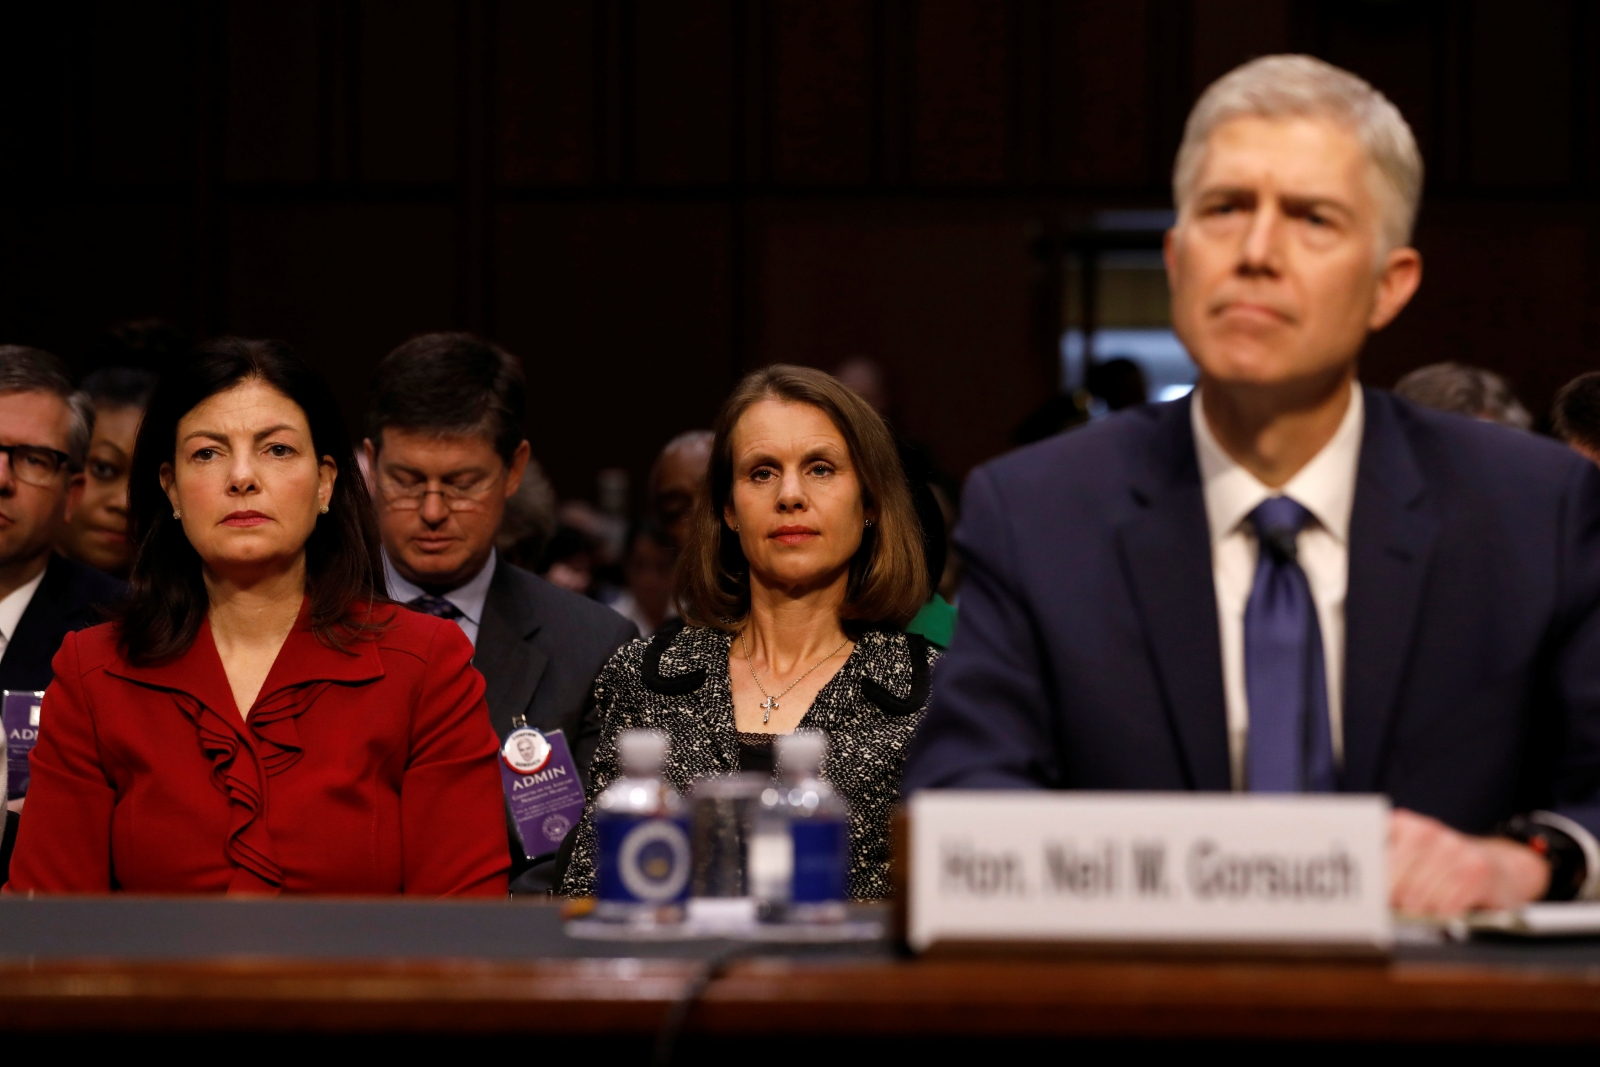 judge-gorsuch-i-have-no-difficulty-ruling-against-or-for-any-party